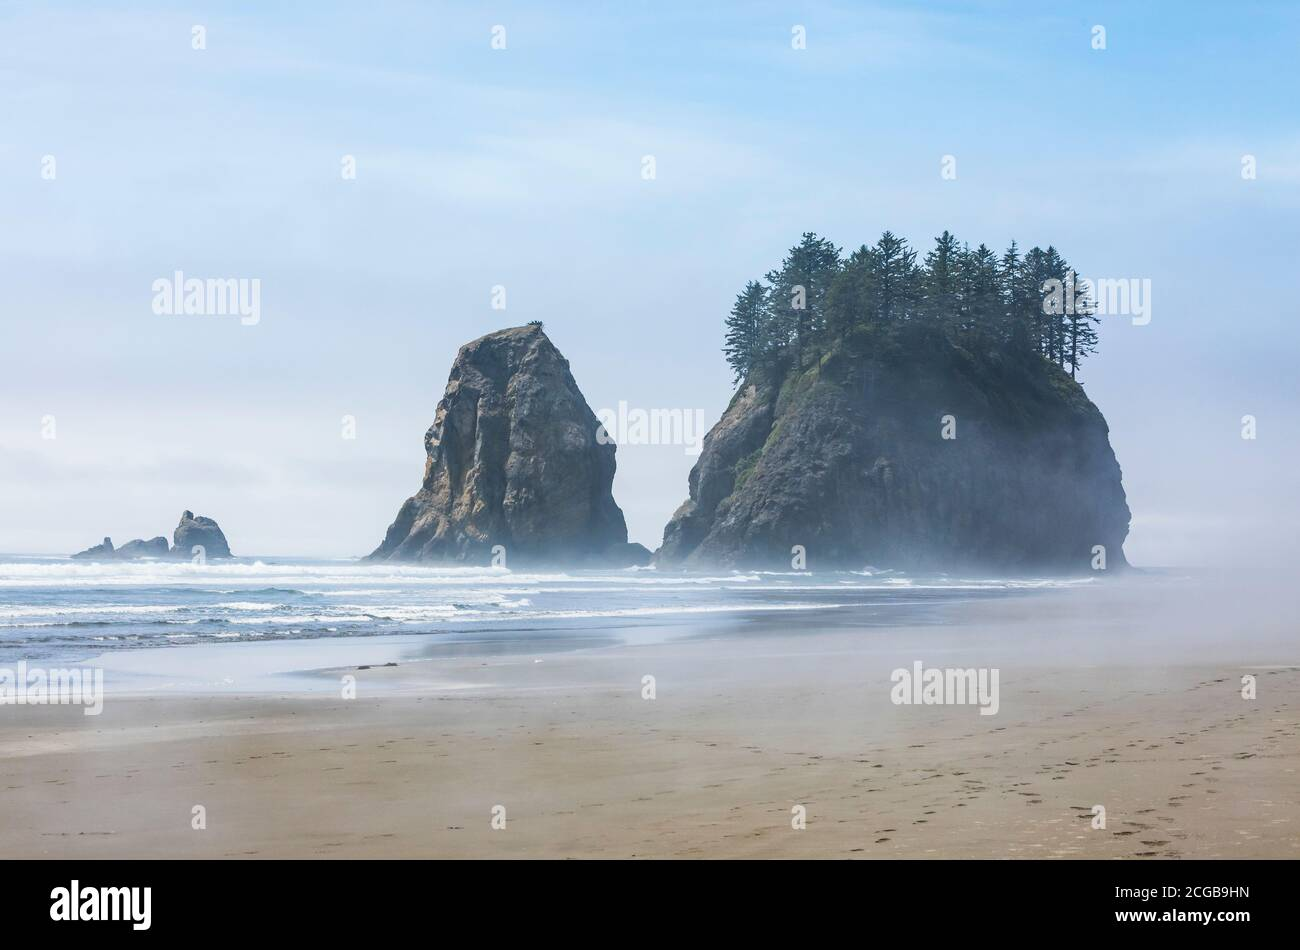 Sea stack rocks offshore at 2nd Beach in the Olympic National Park Coastal Strip, Washington State coast, USA. Stock Photo